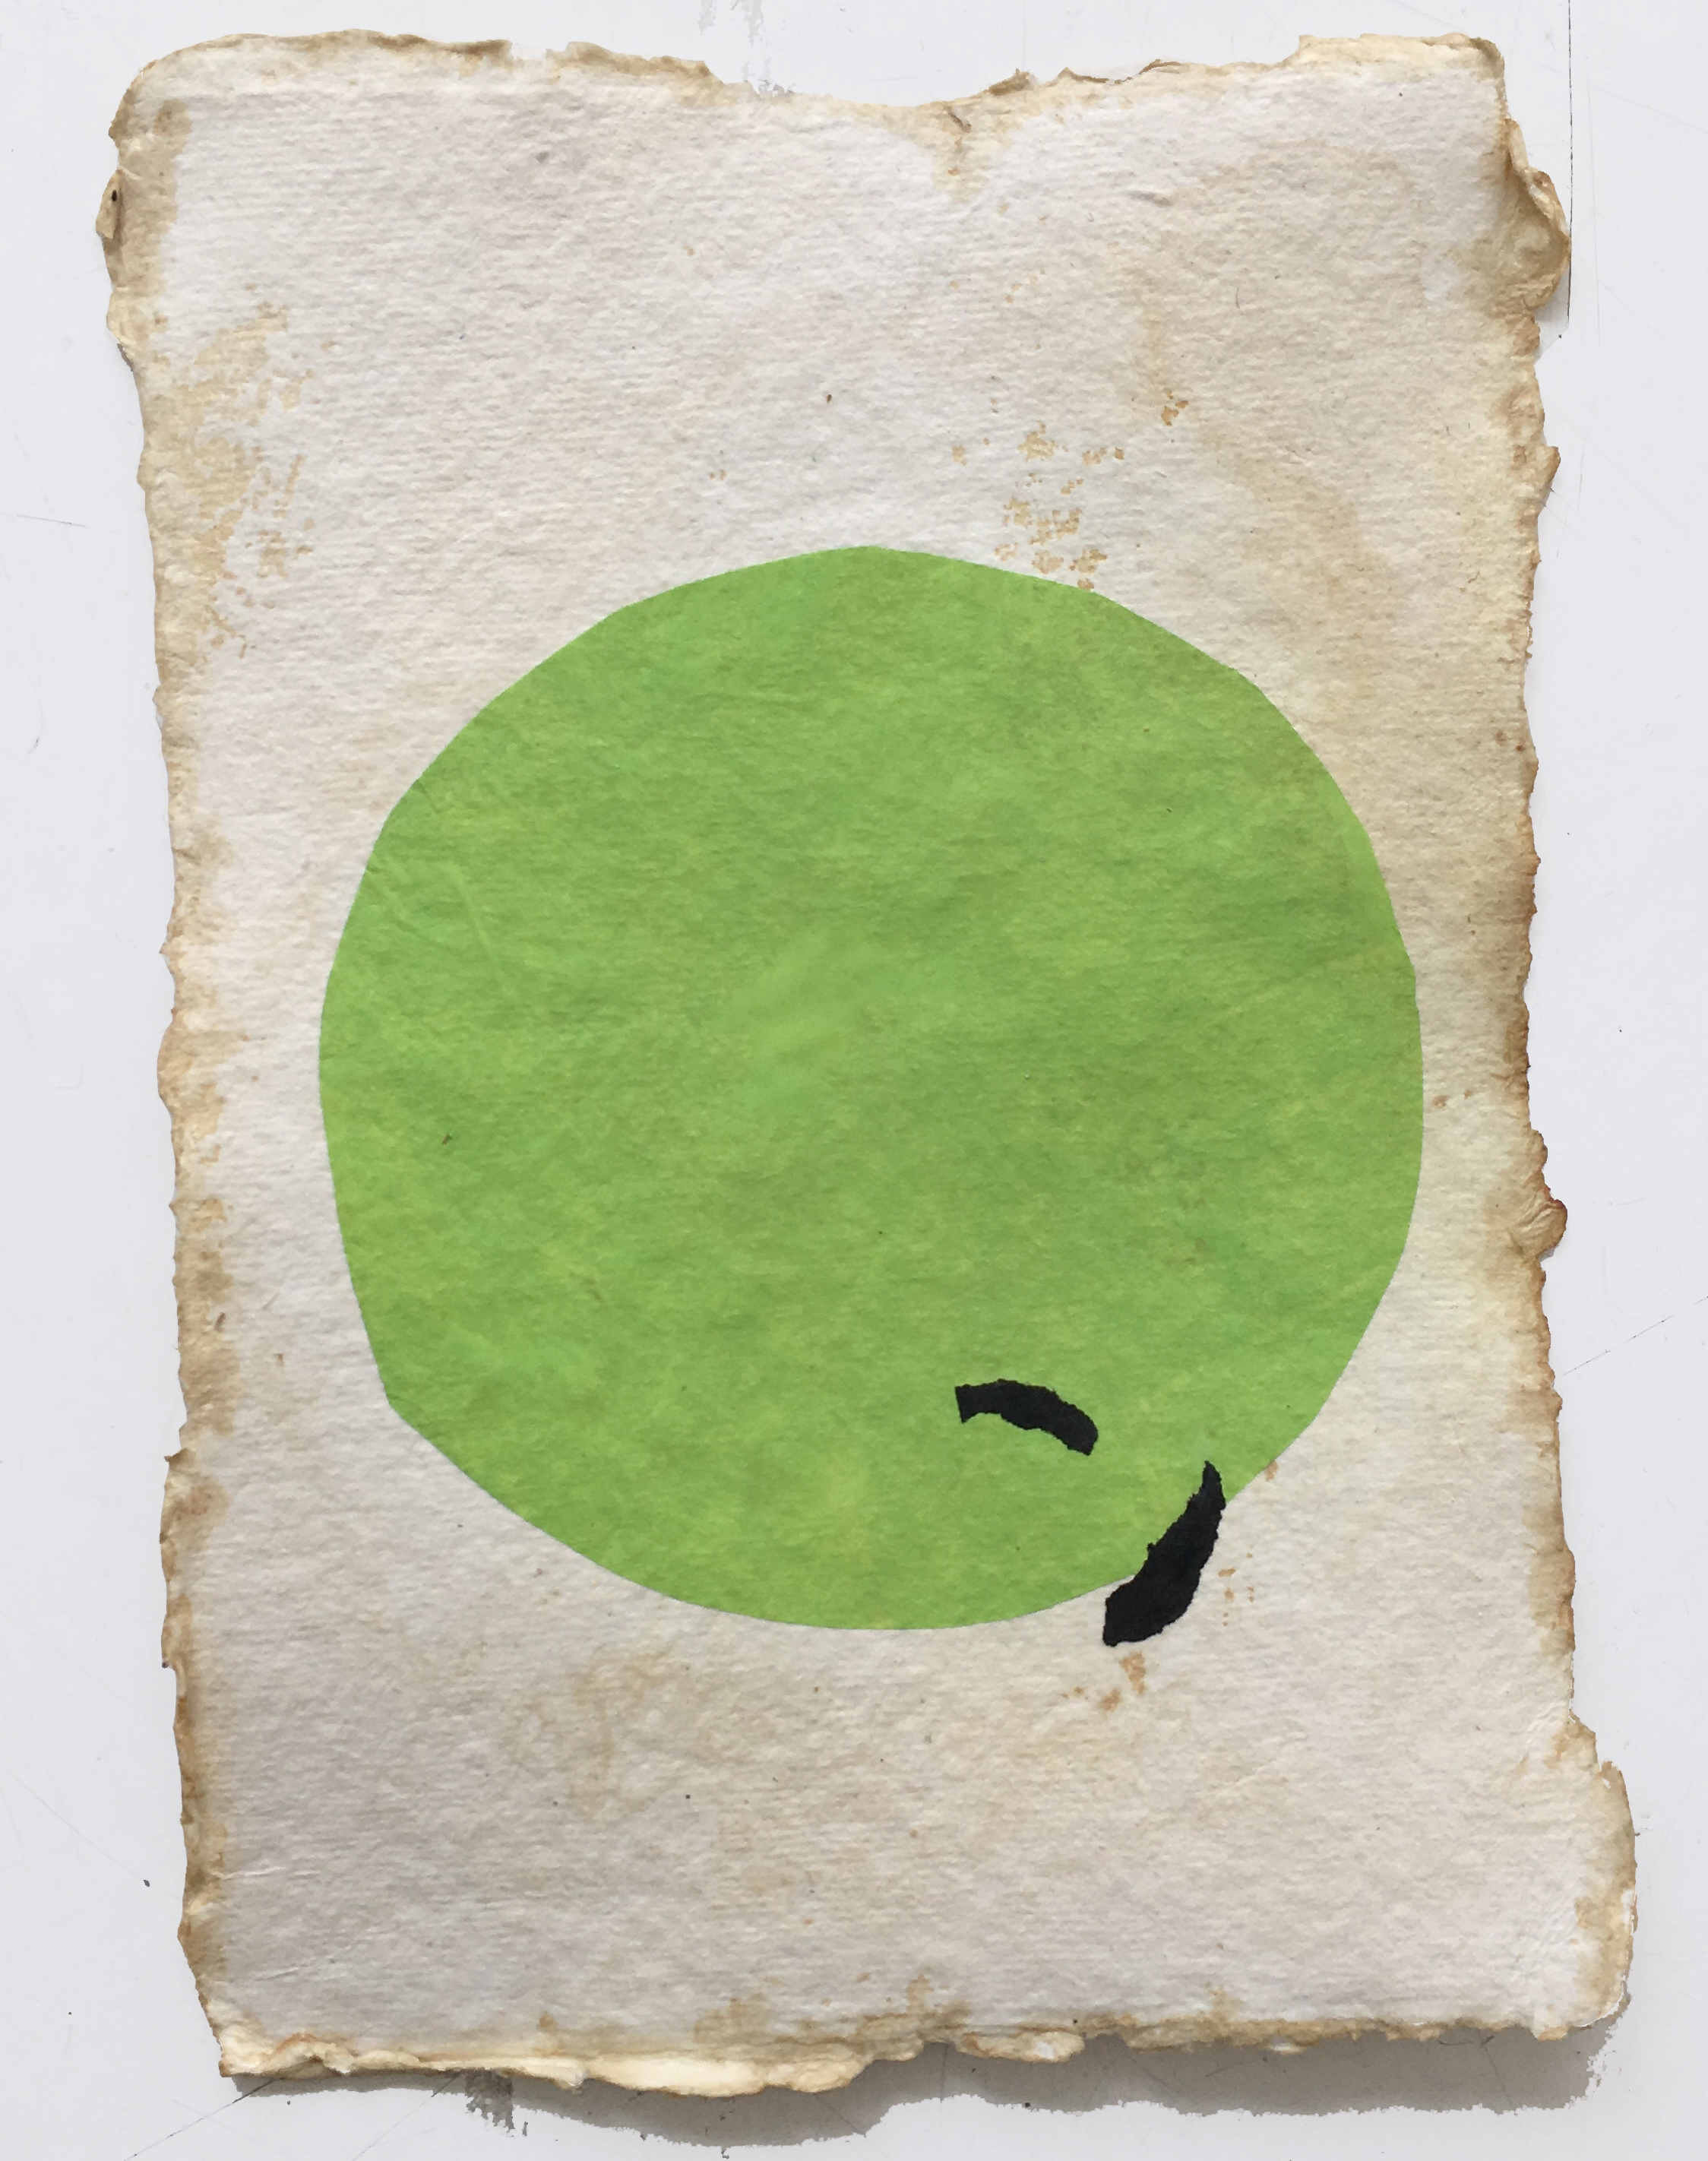 Pale Green Circle on Tan, 2018, mixed media on coffee-dyed watercolor paper, 8.25 x 6.25 in, SOLD